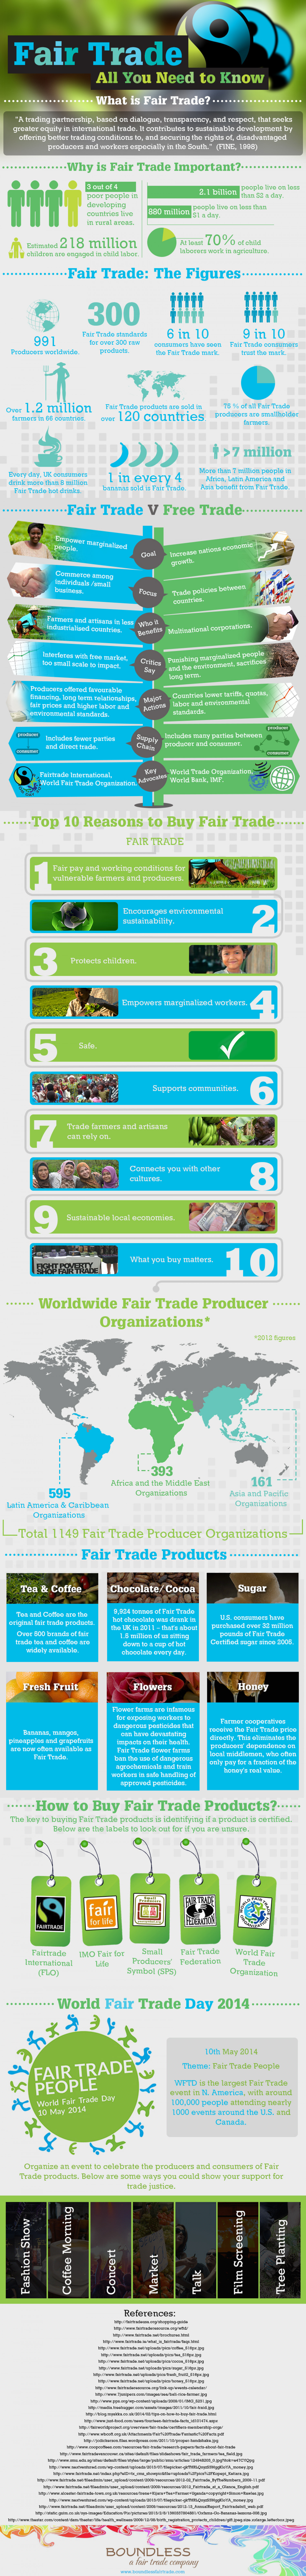 Fair Trade All You Need To Know Infographic